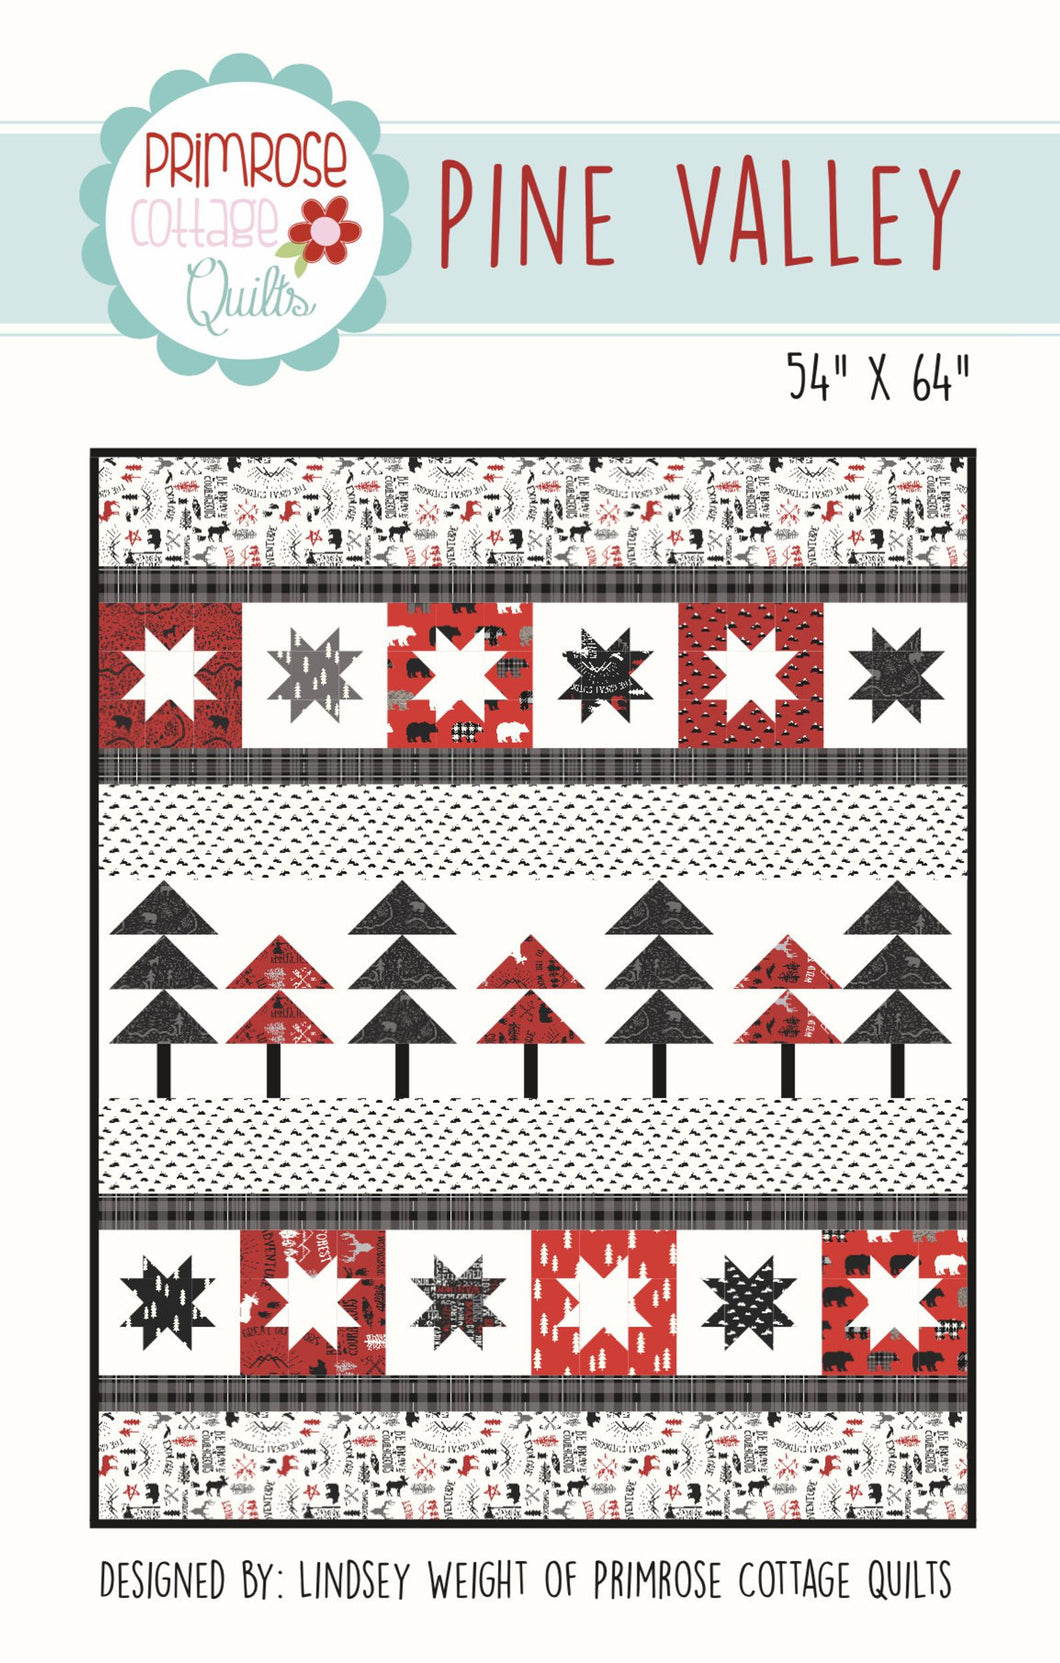 Pine Valley Pattern by Lindsey Weight for Primrose Cottage Quilts